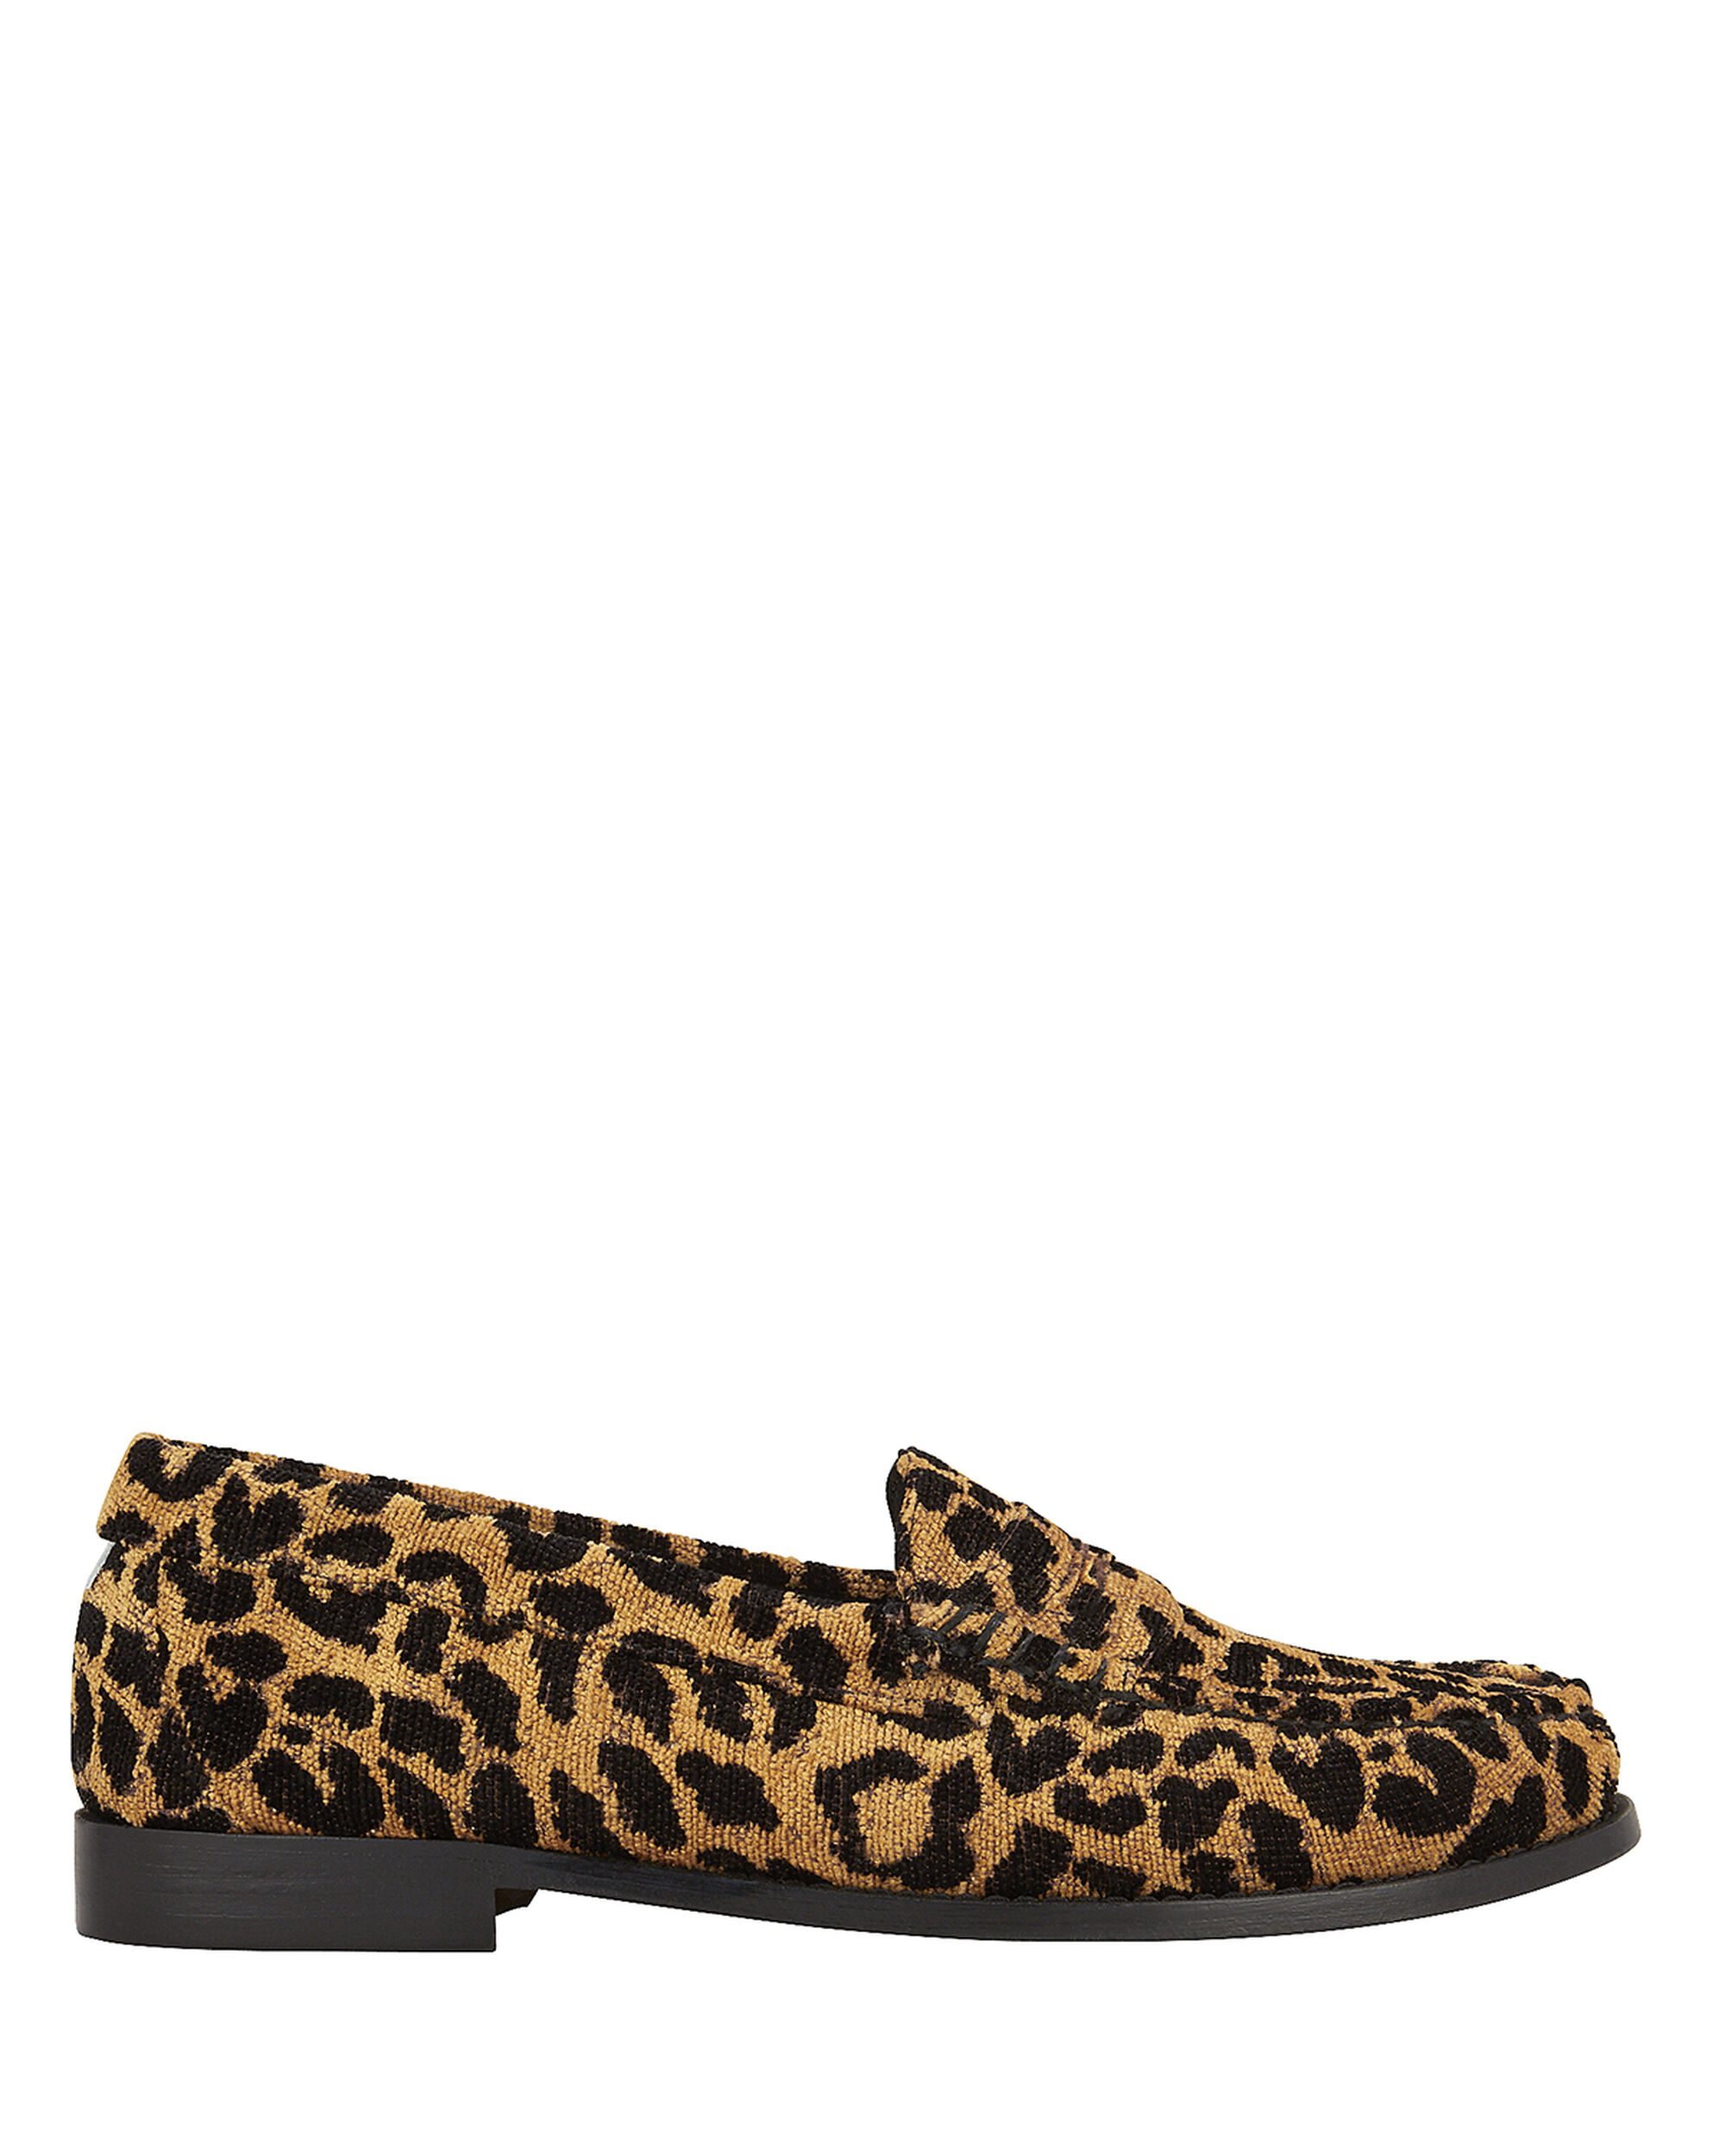 Whitney Leopard Loafers, BEIGE, hi-res